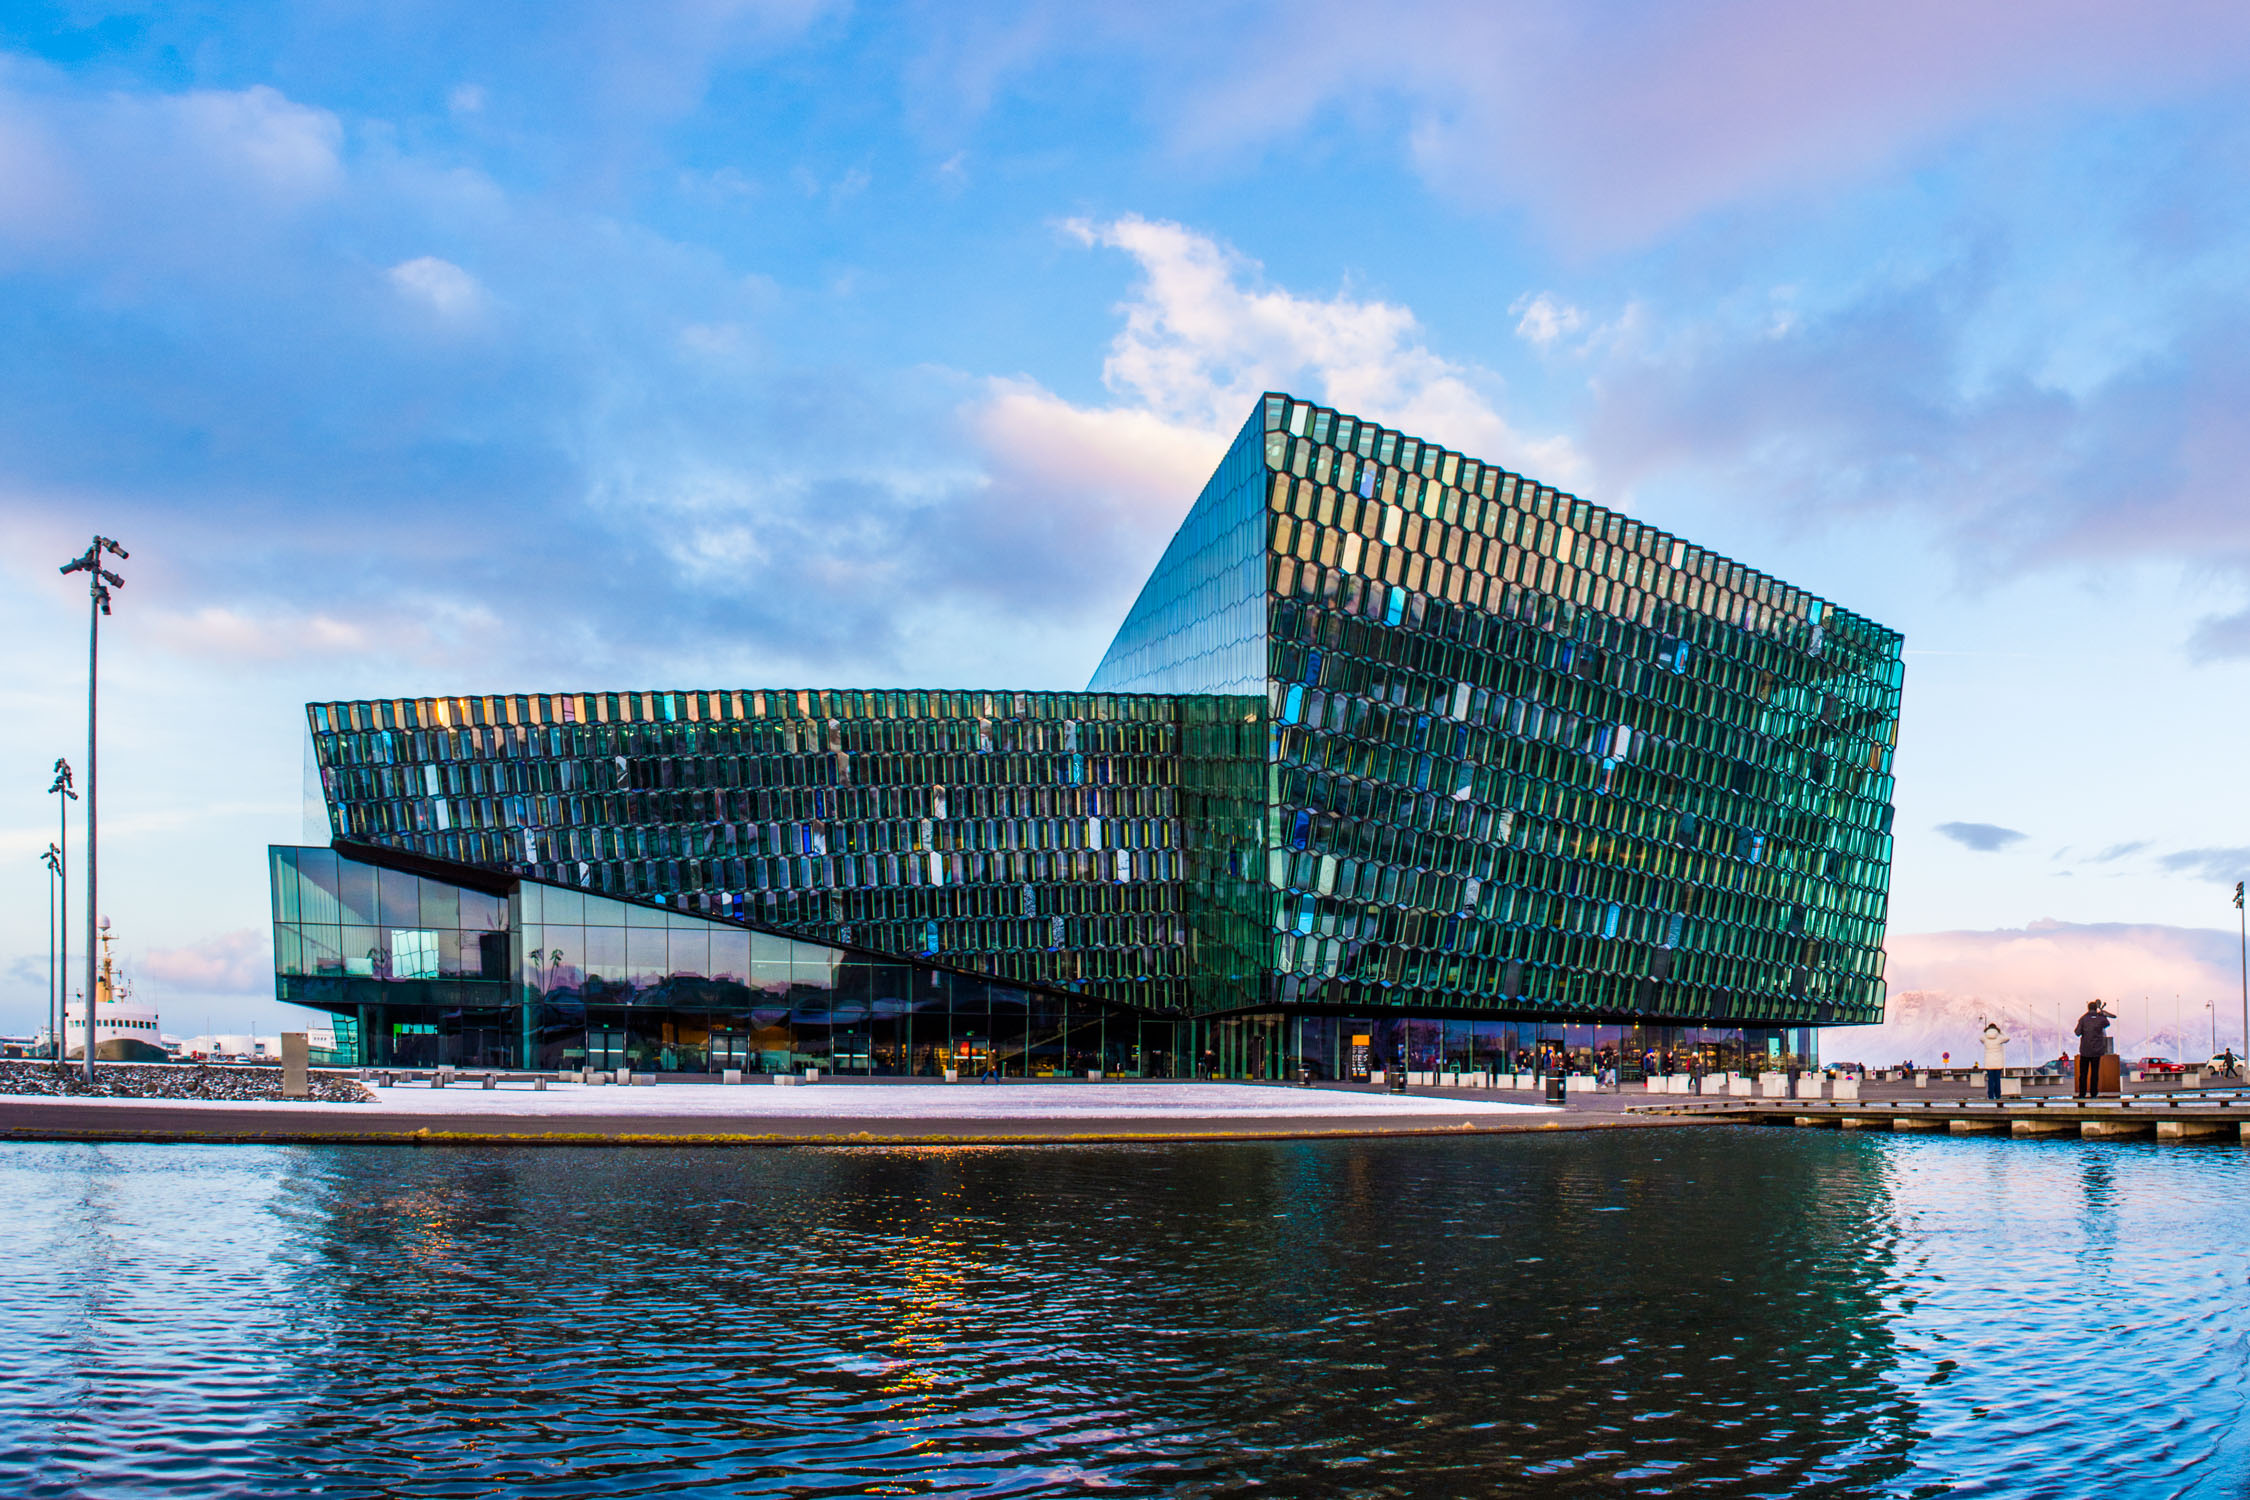 Kolabrautin is located on the top floor of the new HARPA concert hall in Reykjavik, Iceland.